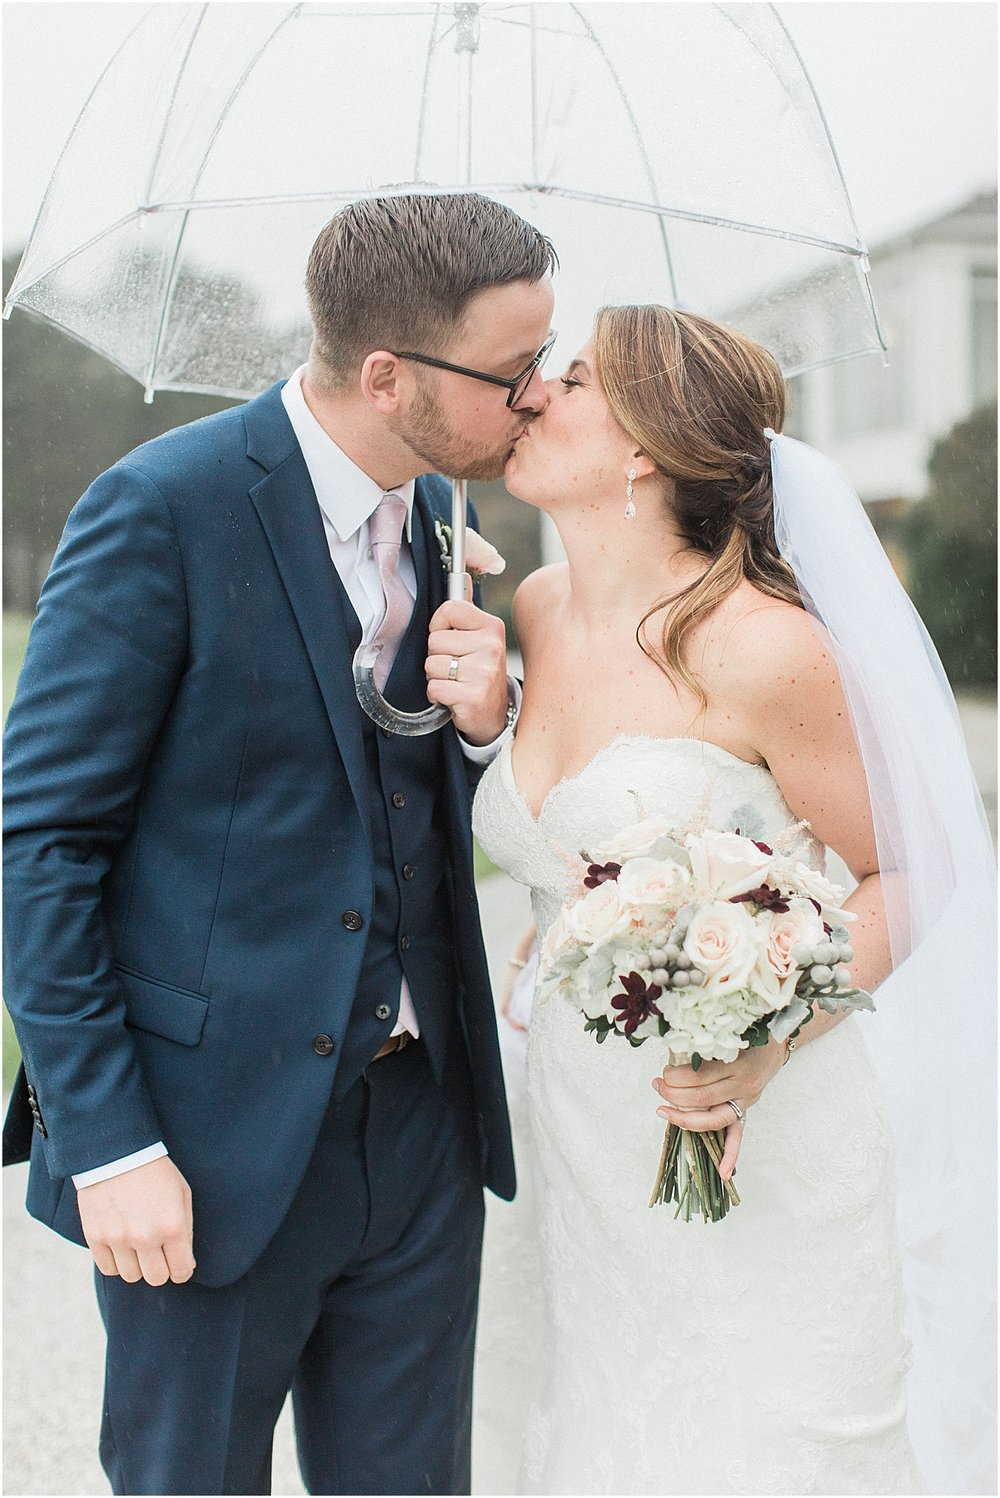 danielle_sean_willowbend_rain_rainy_day_cape_cod_boston_wedding_photographer_meredith_jane_photography_photo_1694.jpg